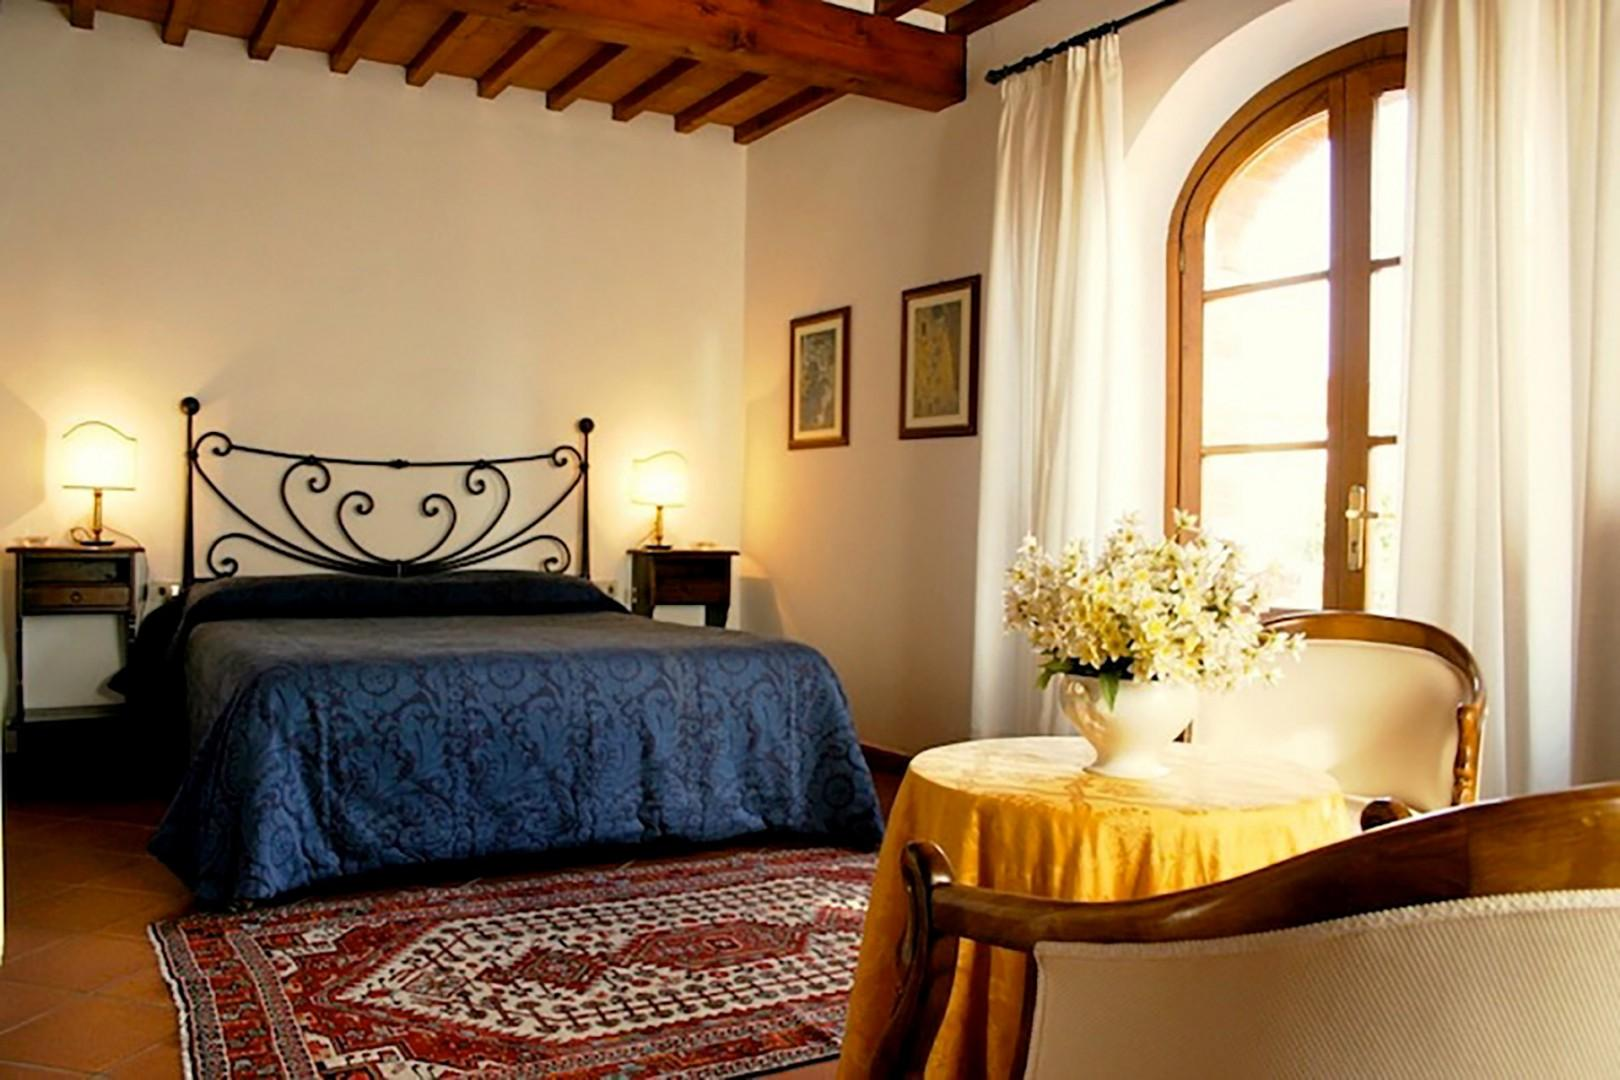 Large bedroom 1 in Belvedere has a private balcony overlooking the castle.